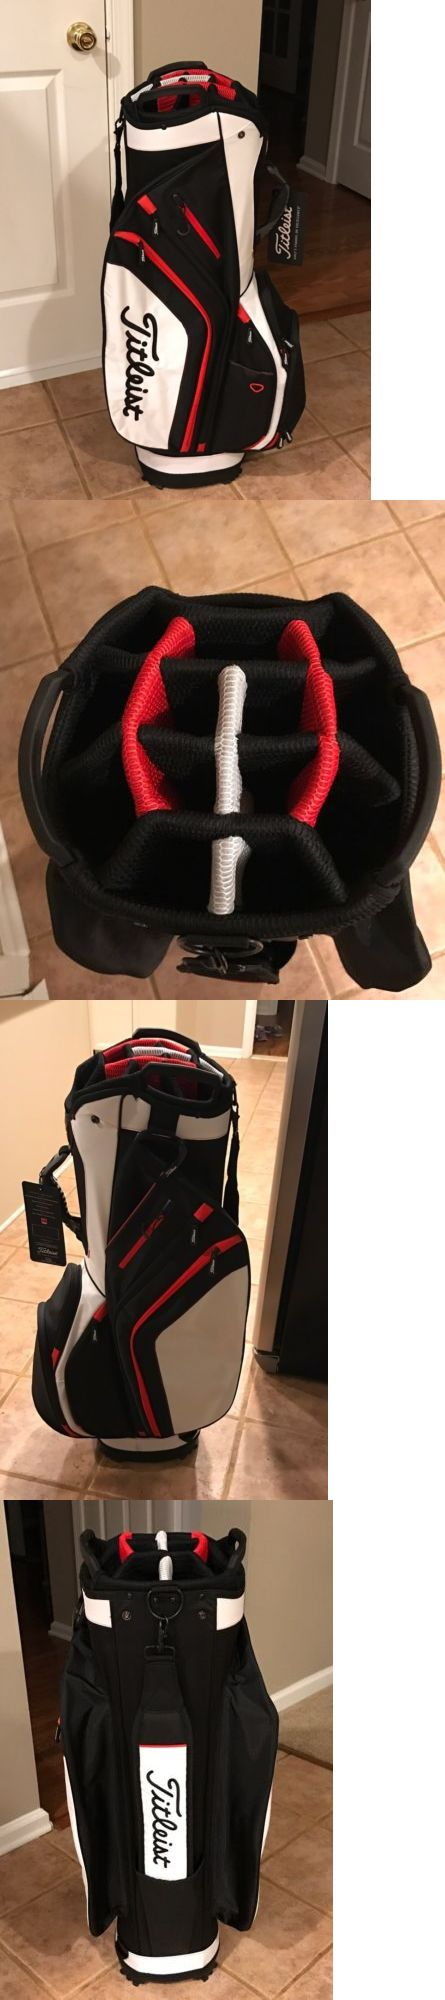 Golf Club Bags 30109: New Titleist Golf Light Weight Cart Bag / Black, White And Red -> BUY IT NOW ONLY: $119.99 on eBay!